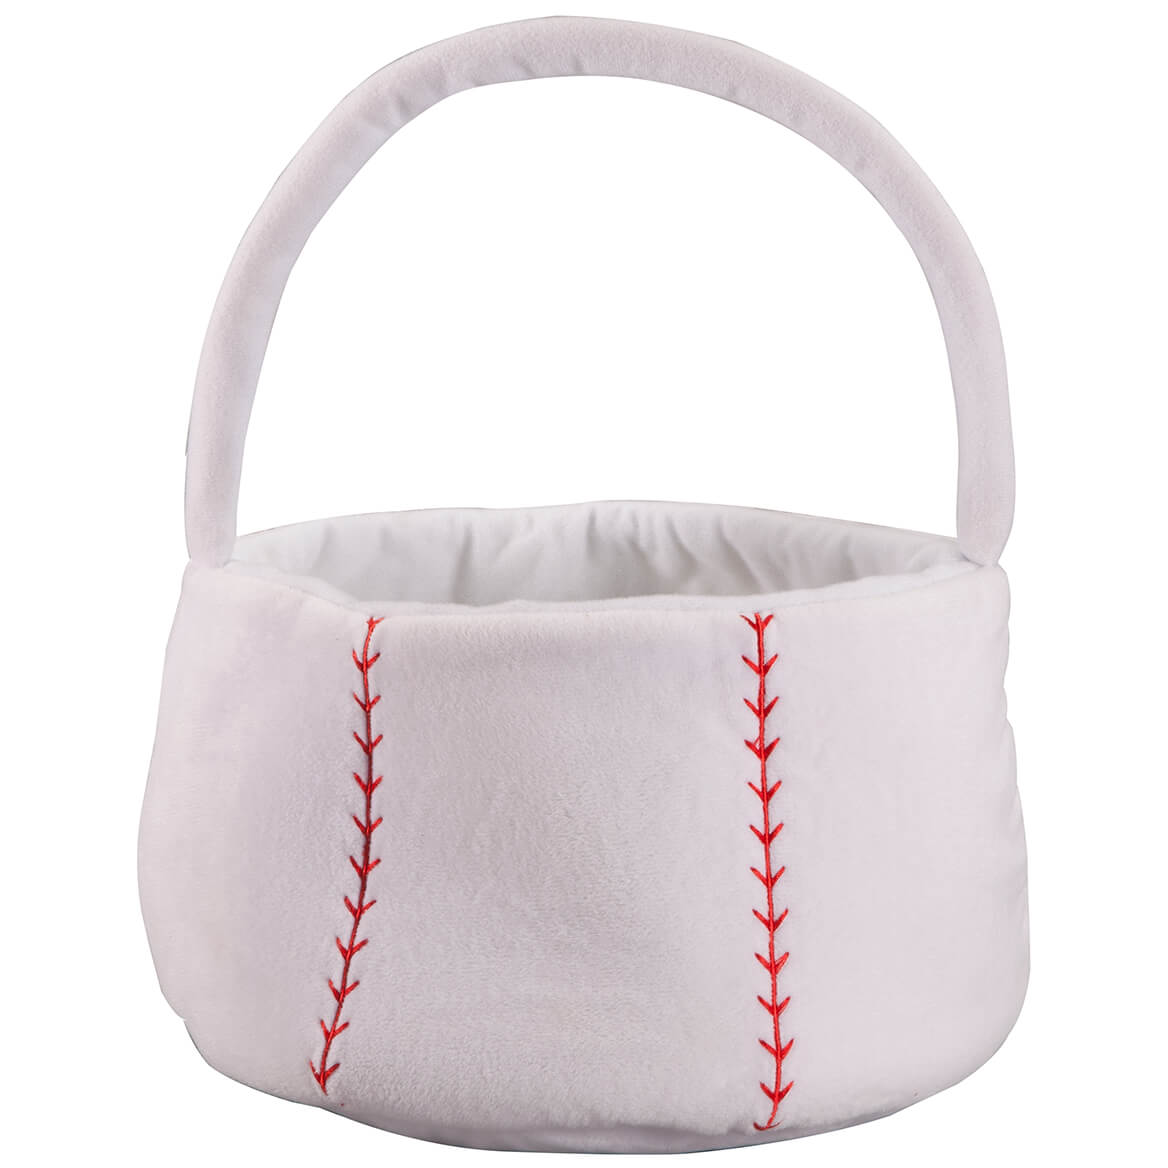 Baseball Easter Basket - Easter Basket for Kids - Miles Kimball